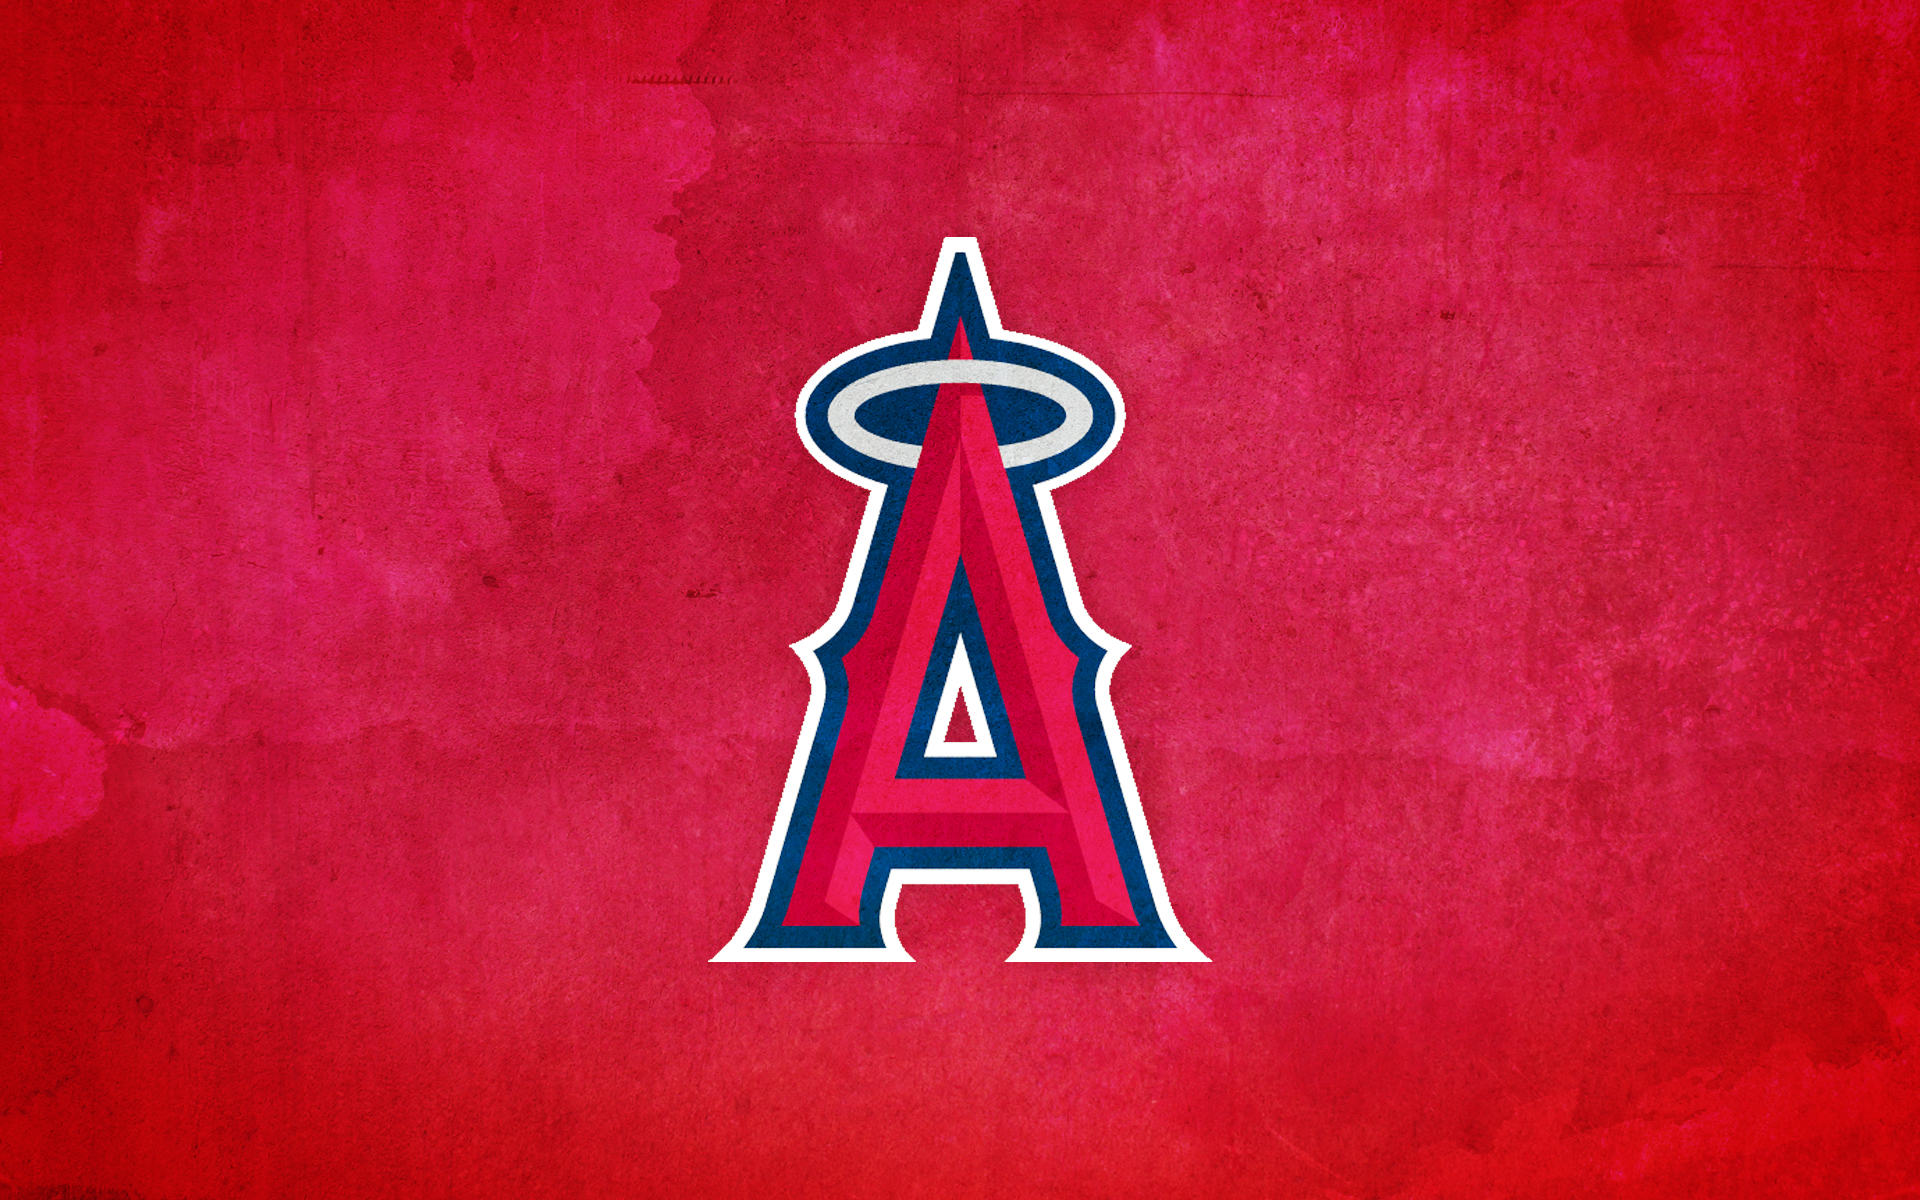 Angeles Angels of Anaheim wallpapers Los Angeles Angels of Anaheim 1920x1200